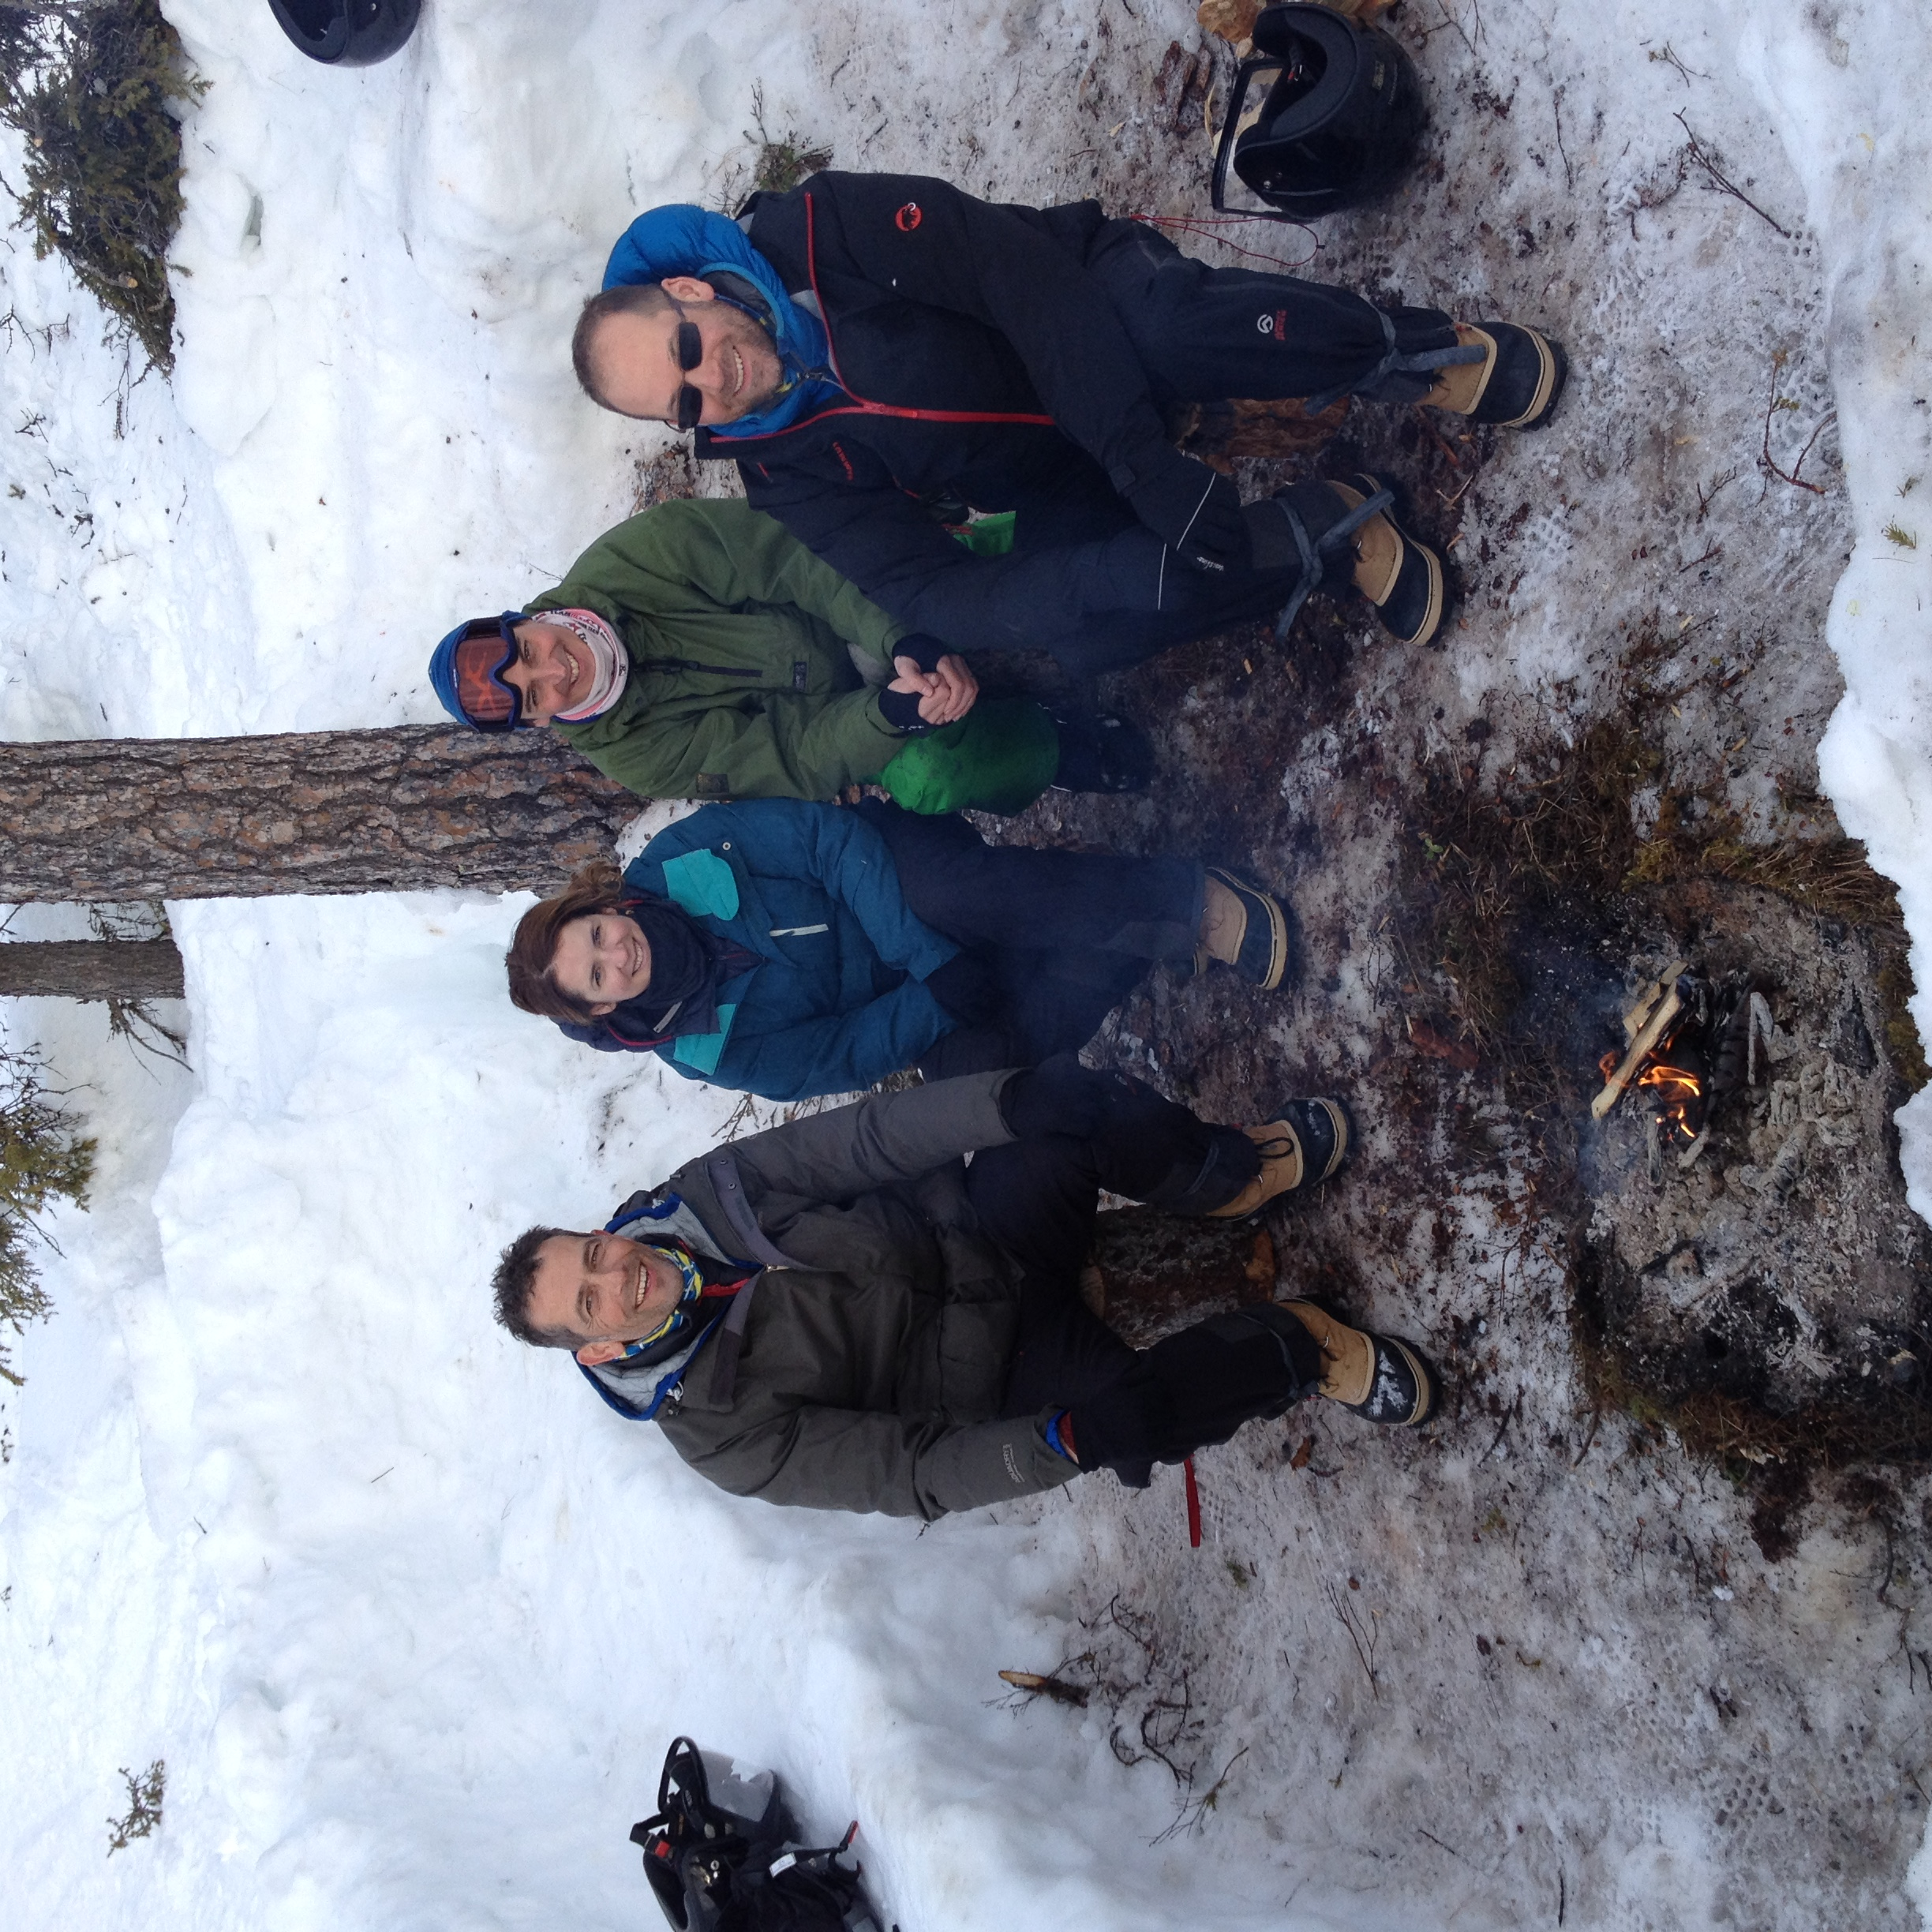 Arctic survival team building course